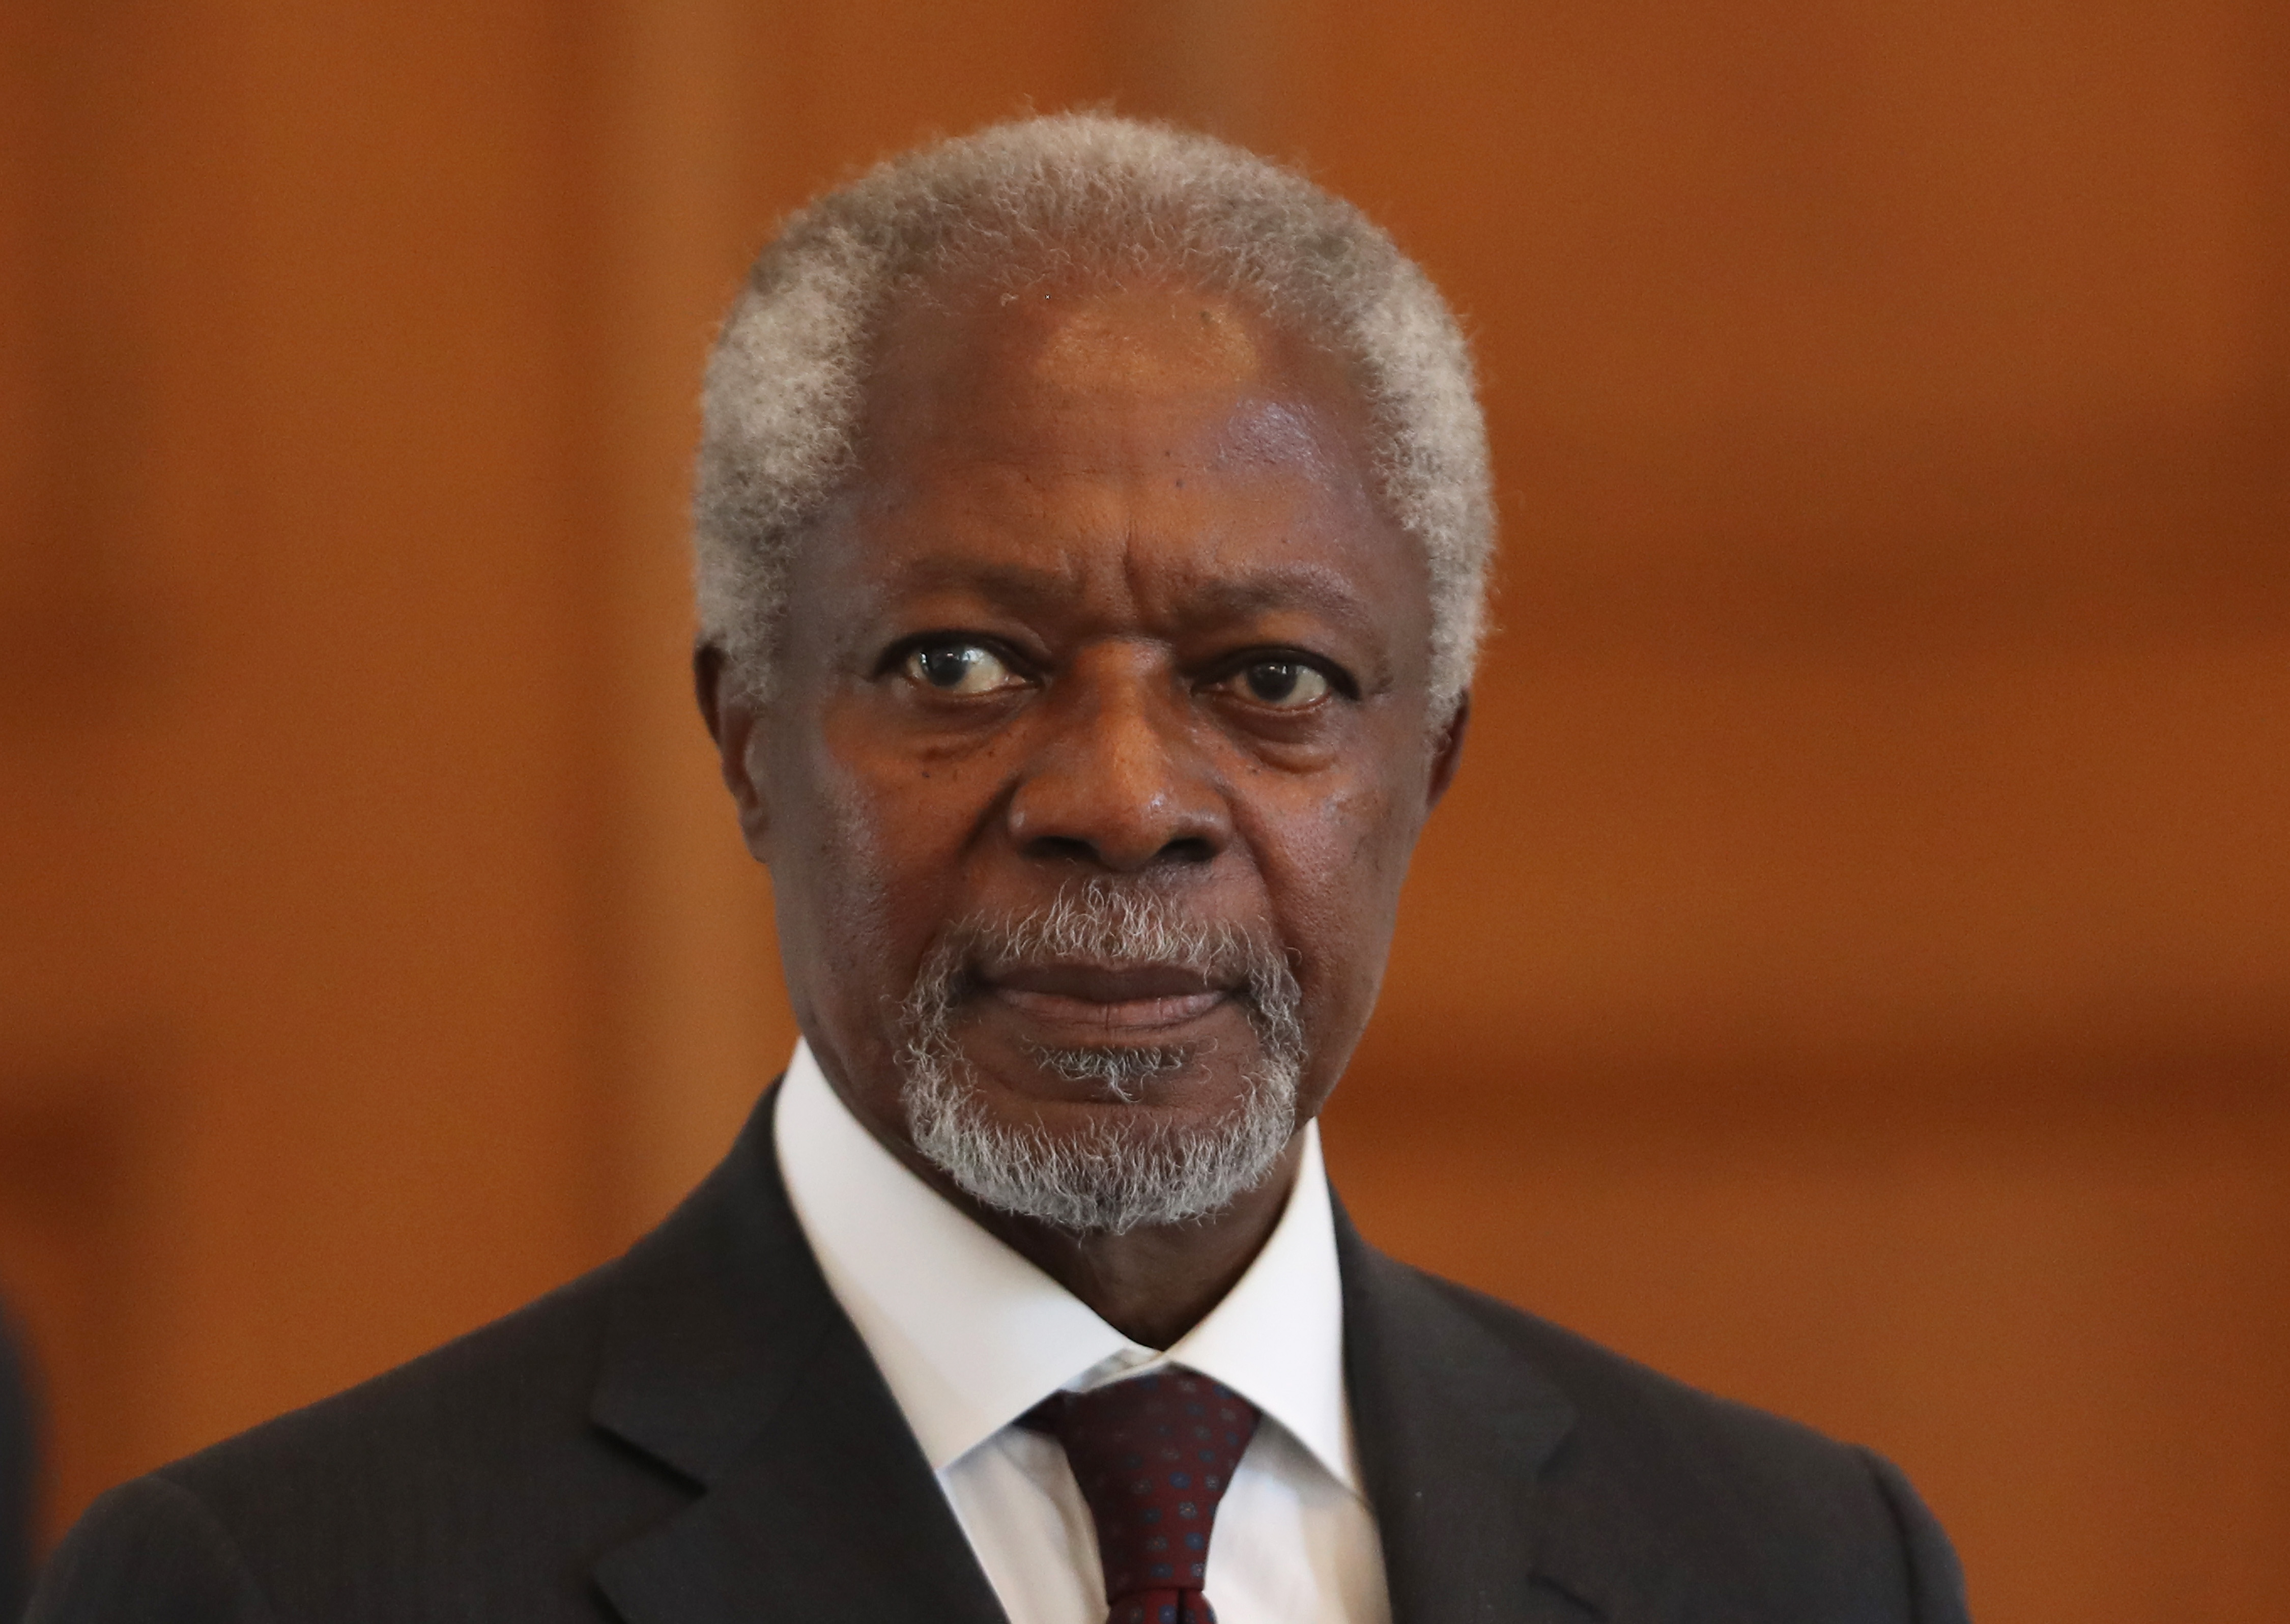 Former U.N. General Secretary Kofi Annan arrives to meet with German President Joachim Gauck at Schloss Bellevue palace on September 13, 2016 in Berlin, Germany. Annan is Chairman of 'The Elders,' is an international group of mostly elderly former diplomats, human rights activists and peace proponents founded in 2007 by Nelson Mandela.